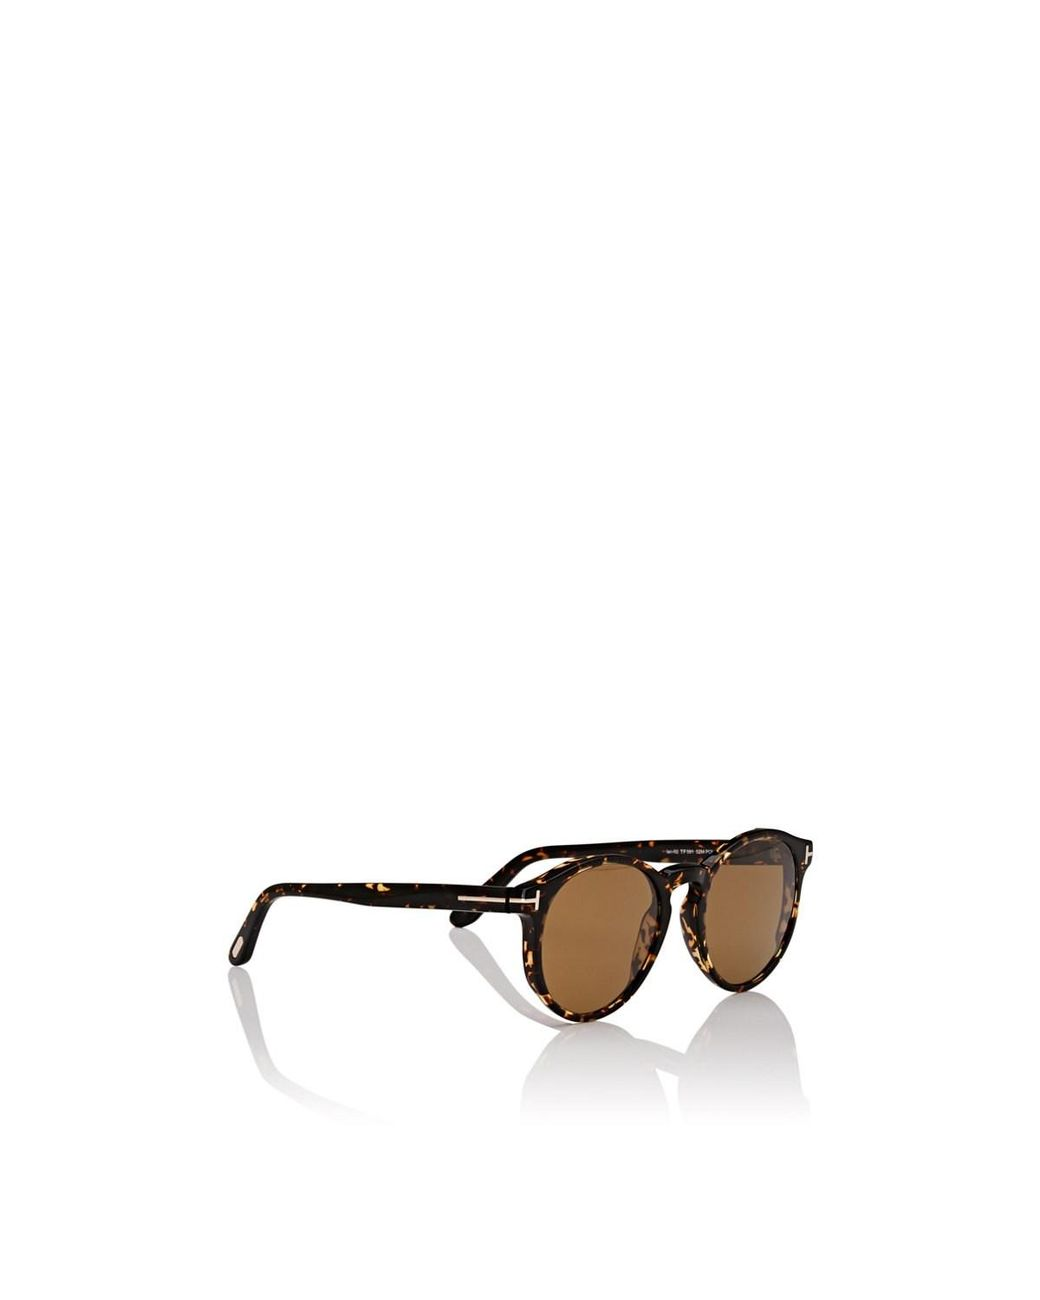 5a4e3d2541dc Tom Ford Ian Sunglasses in Brown for Men - Lyst